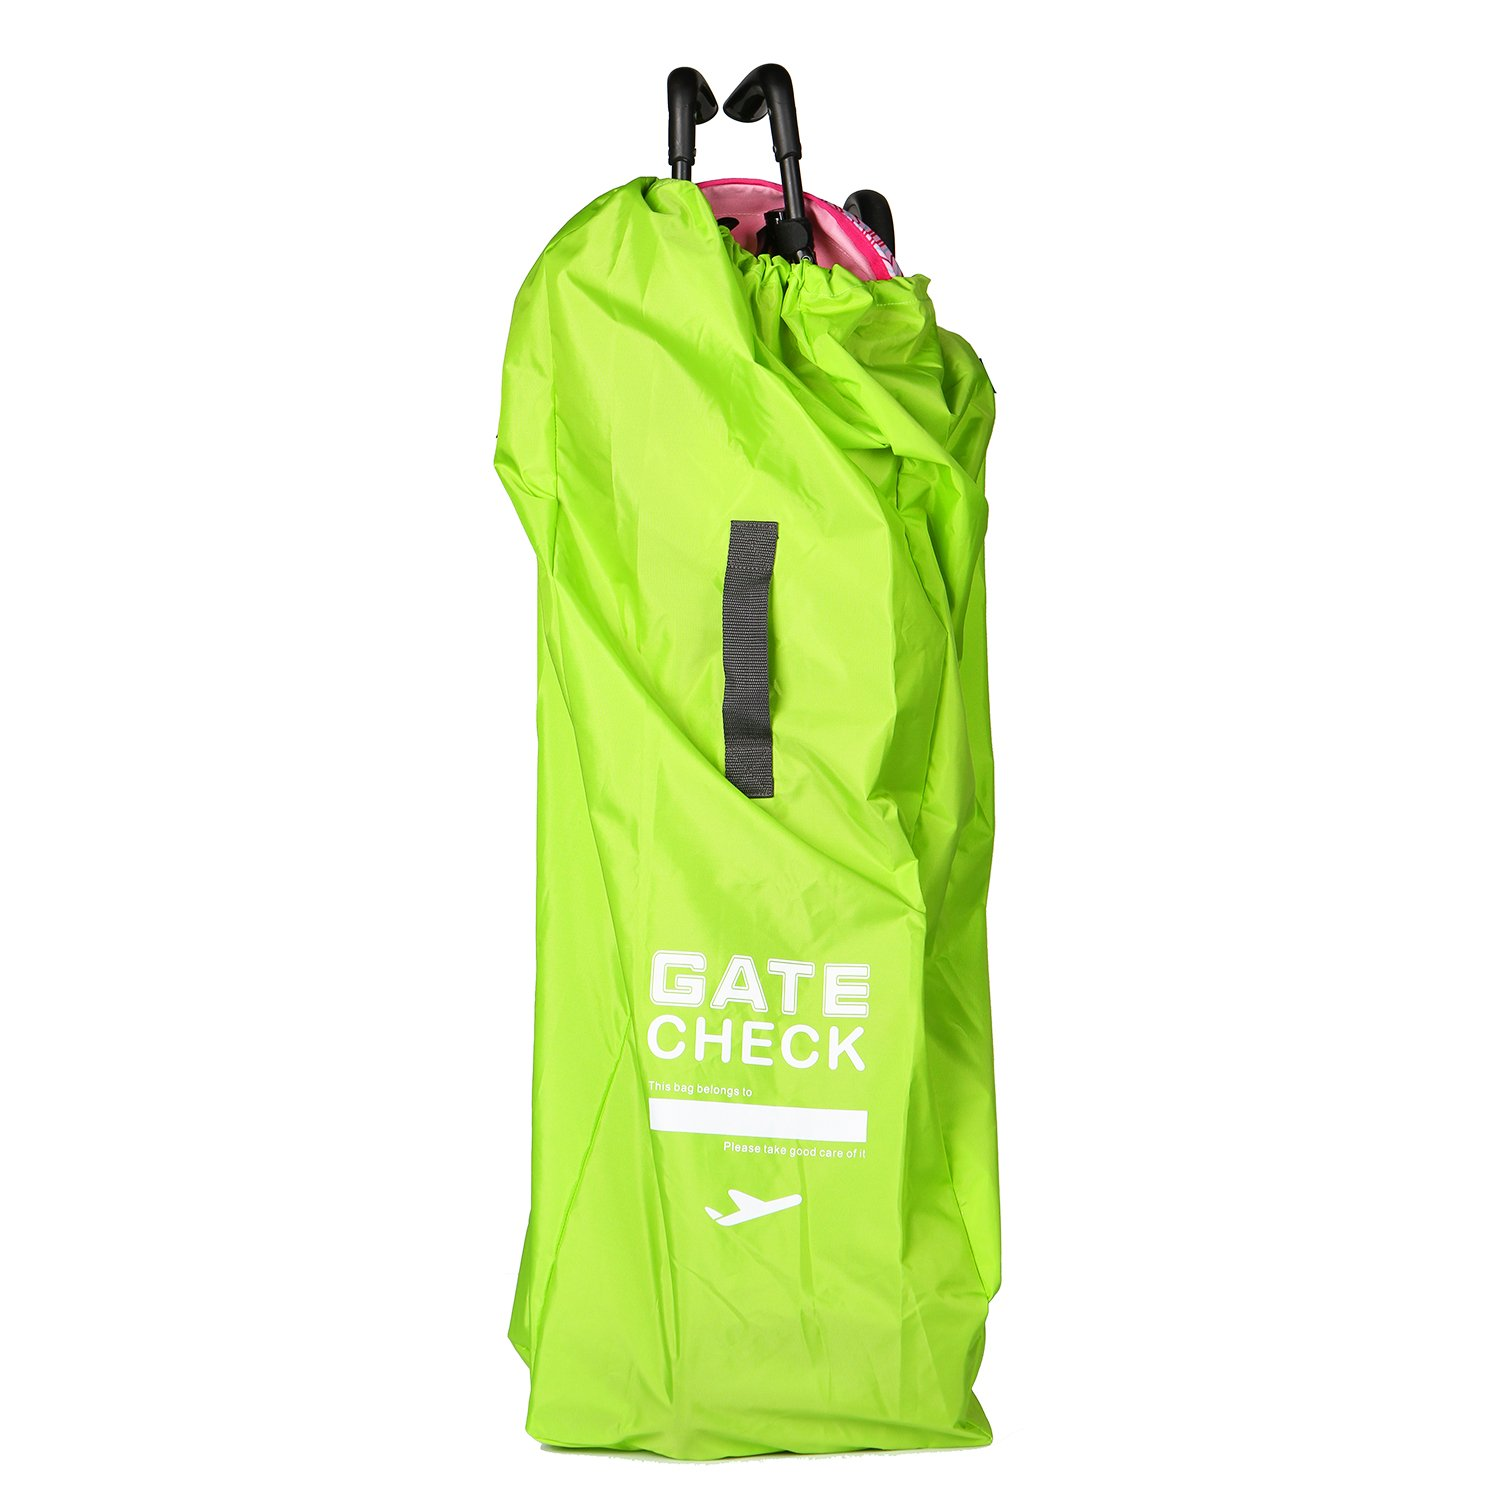 EleFox Gate Check Travel Bag for Universal Umbrella Strollers with Attached Carrying Pouch, Light Green